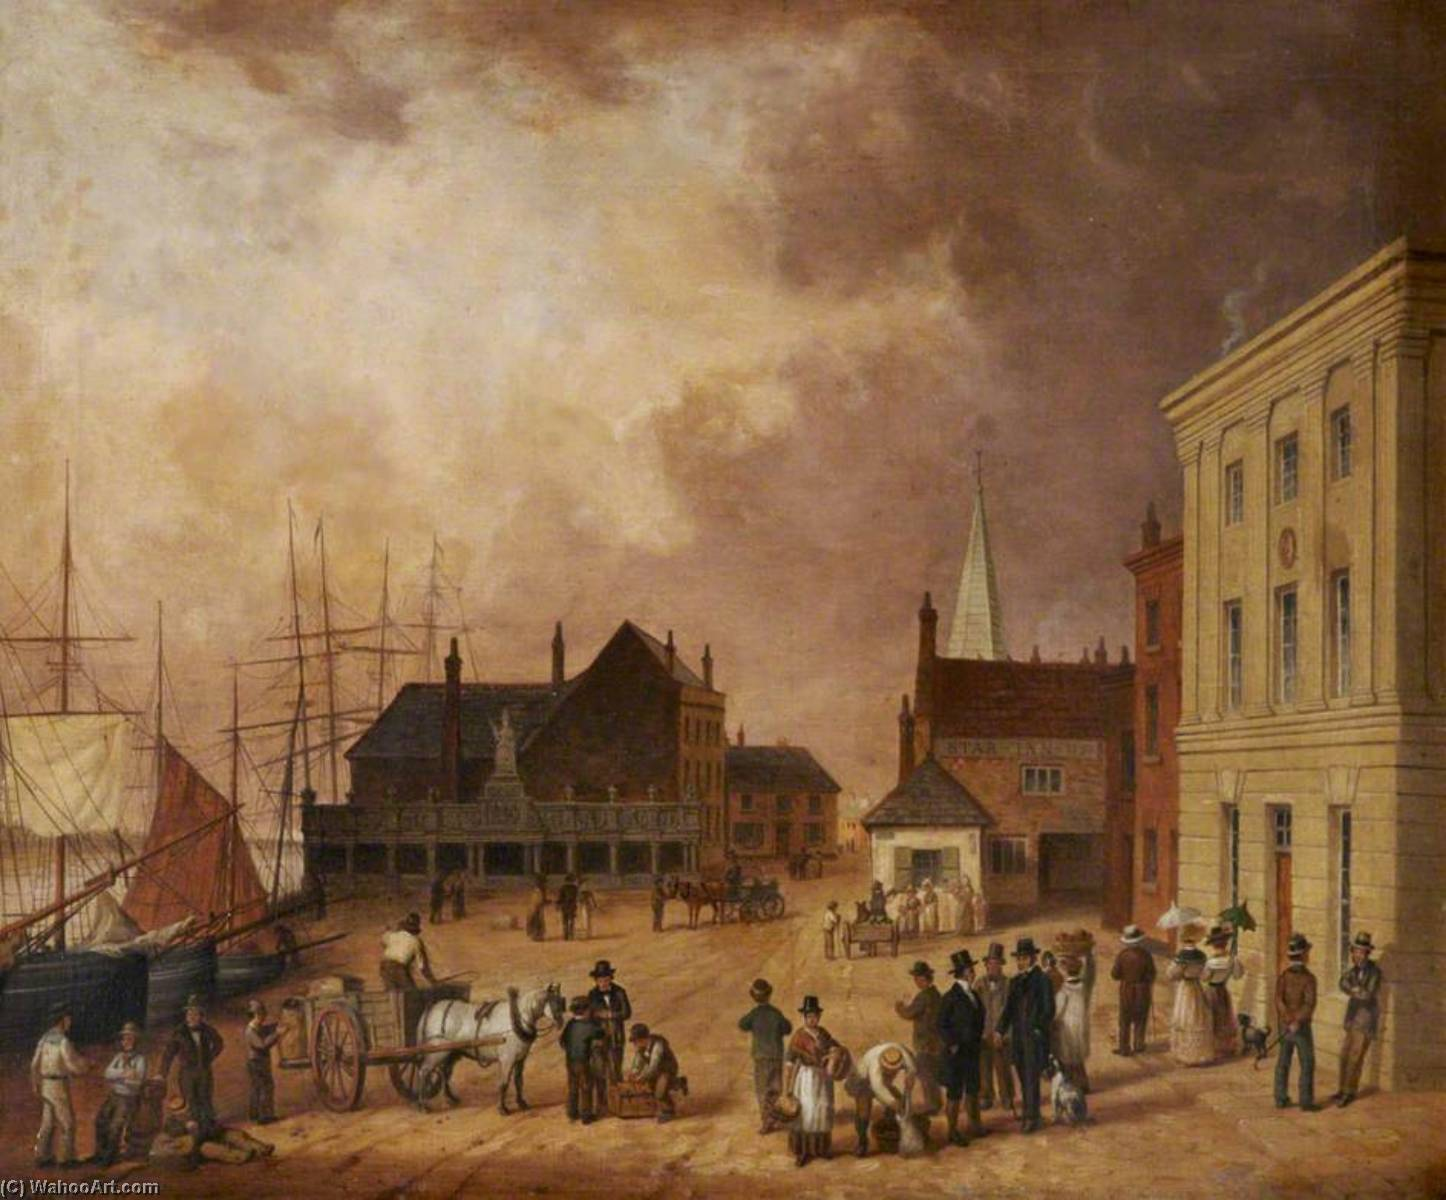 Order Museum Quality Reproductions : The Strand, Barnstaple, Devon by Joseph Kennedy | WahooArt.com